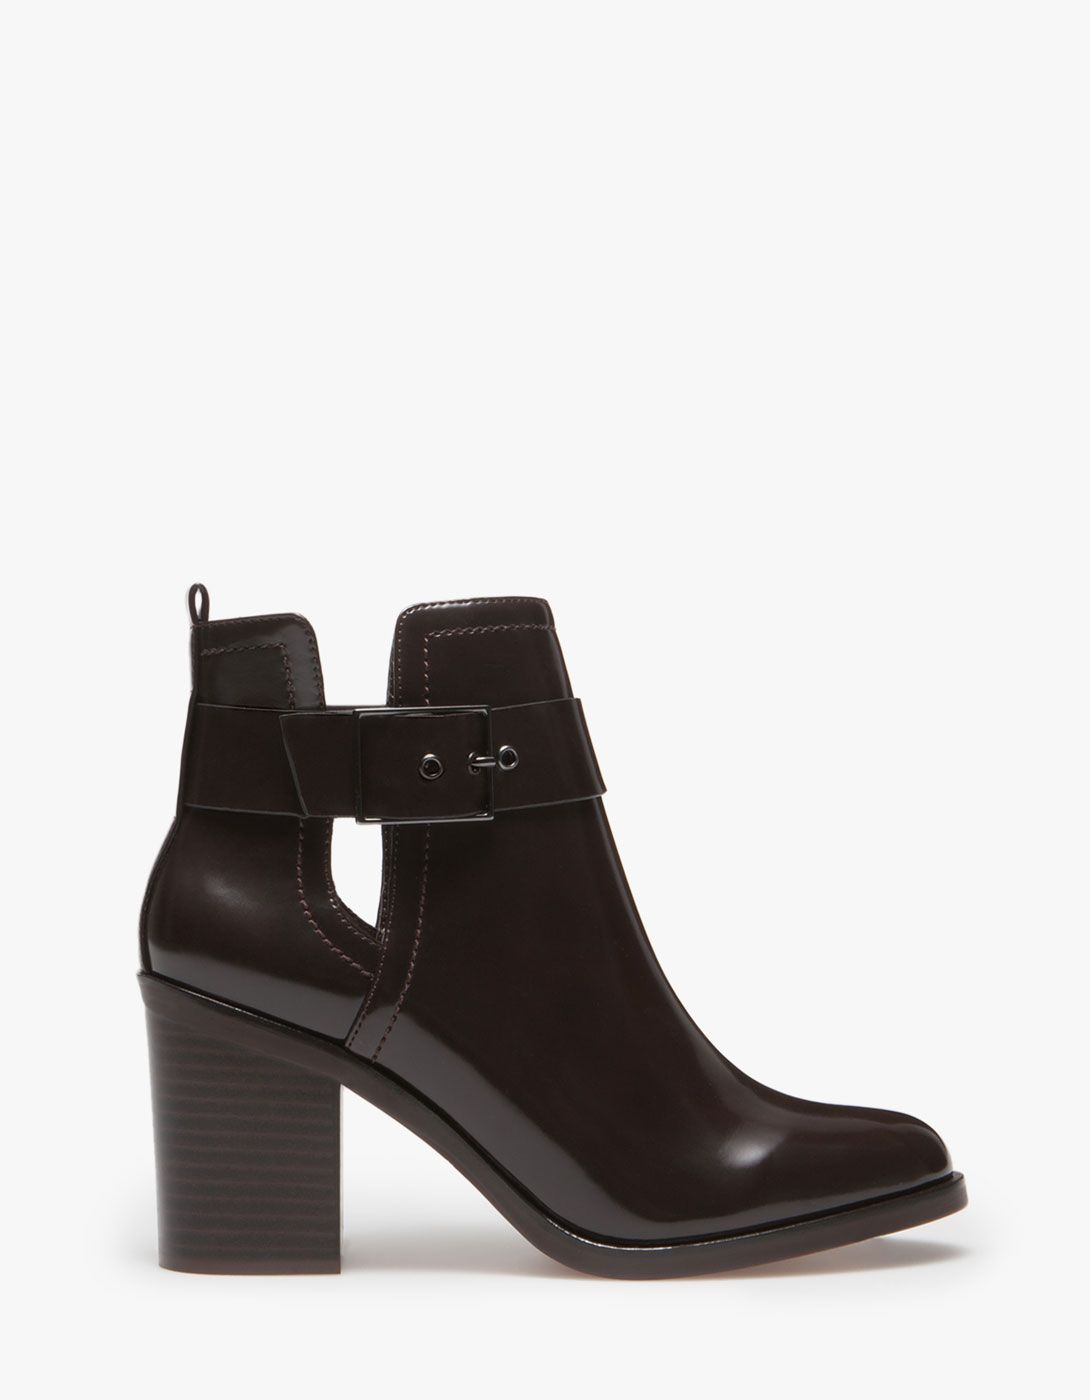 5e3d5118122 Stradivarius High heel cut out ankle boots | Shoes | Boots, Shoes, Heels